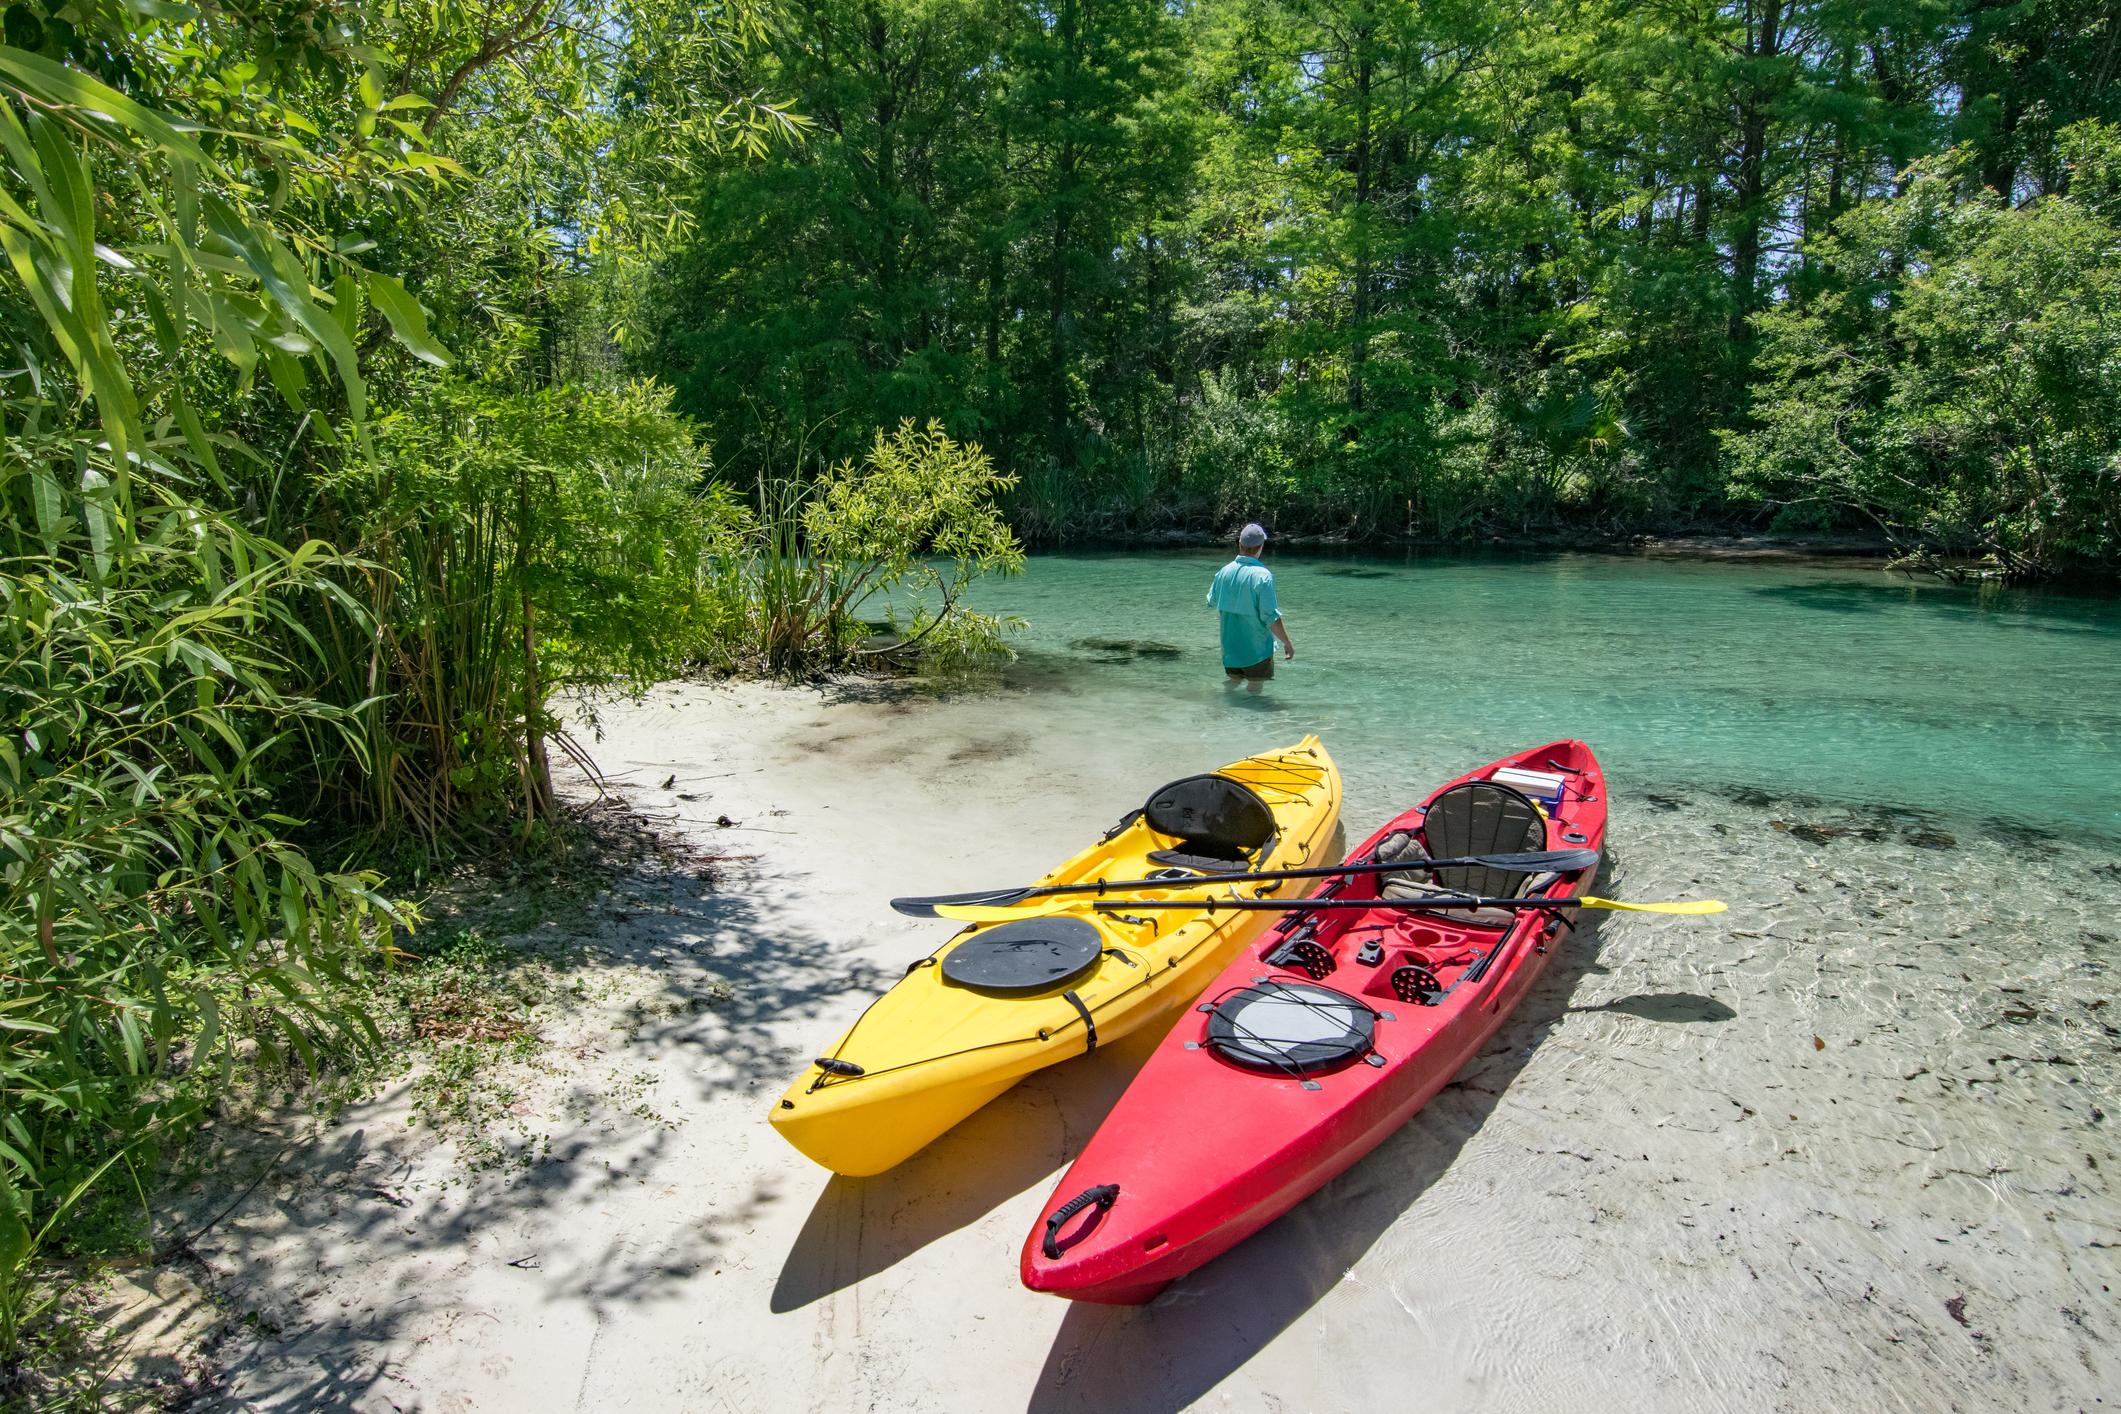 A lone kayaker cools off in the Weeki Wachee River in Florida representing Florida adventure bucket list